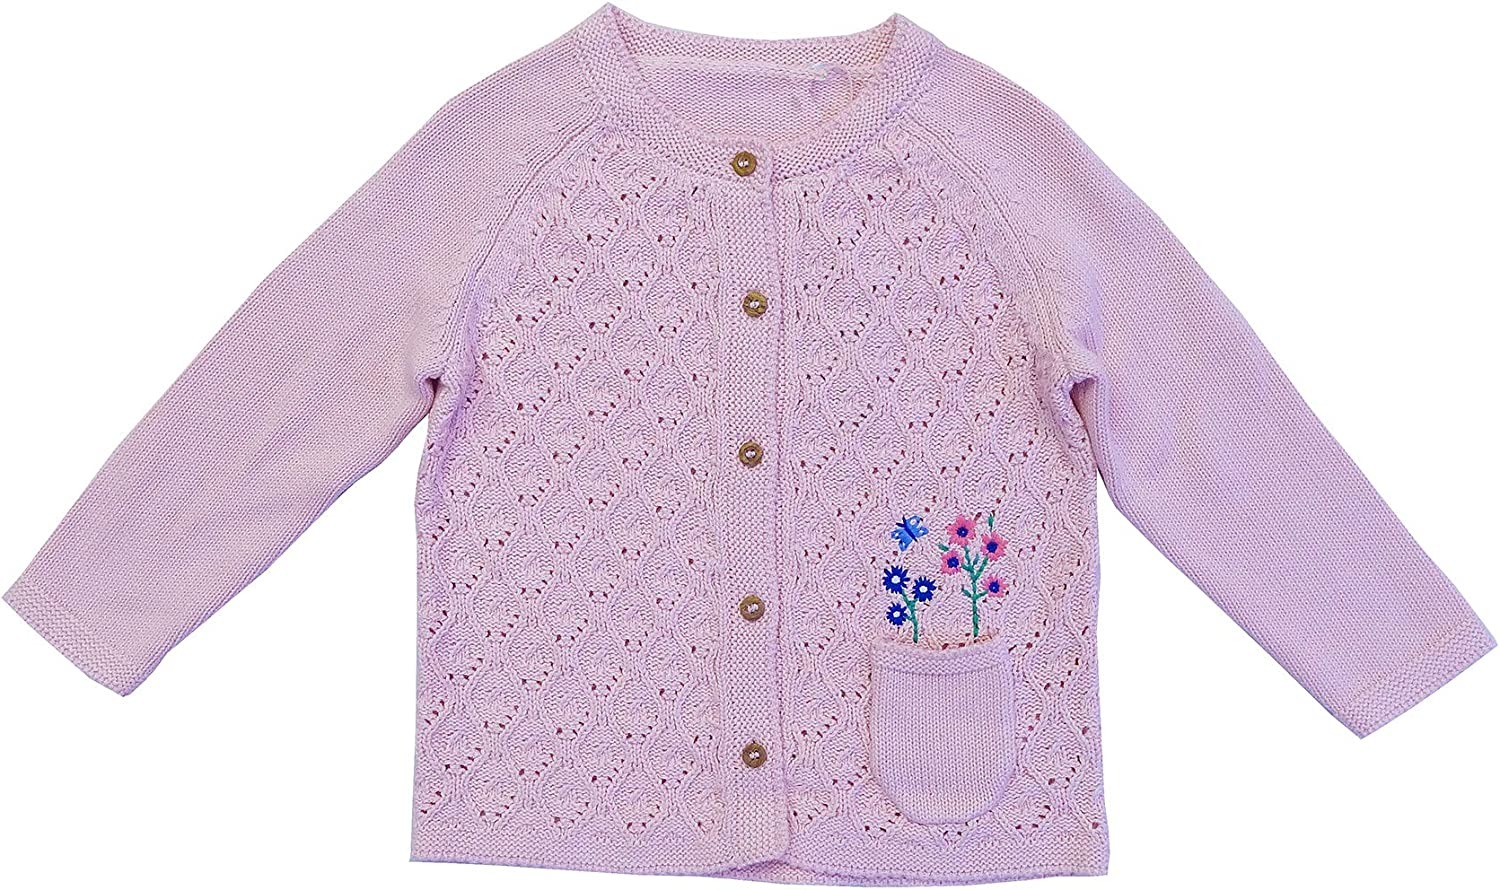 Get Wivvit Baby Girls Cable Knit Flower Pocket Cardigan Tiny Prem Sizes from Newborn to 18 Months